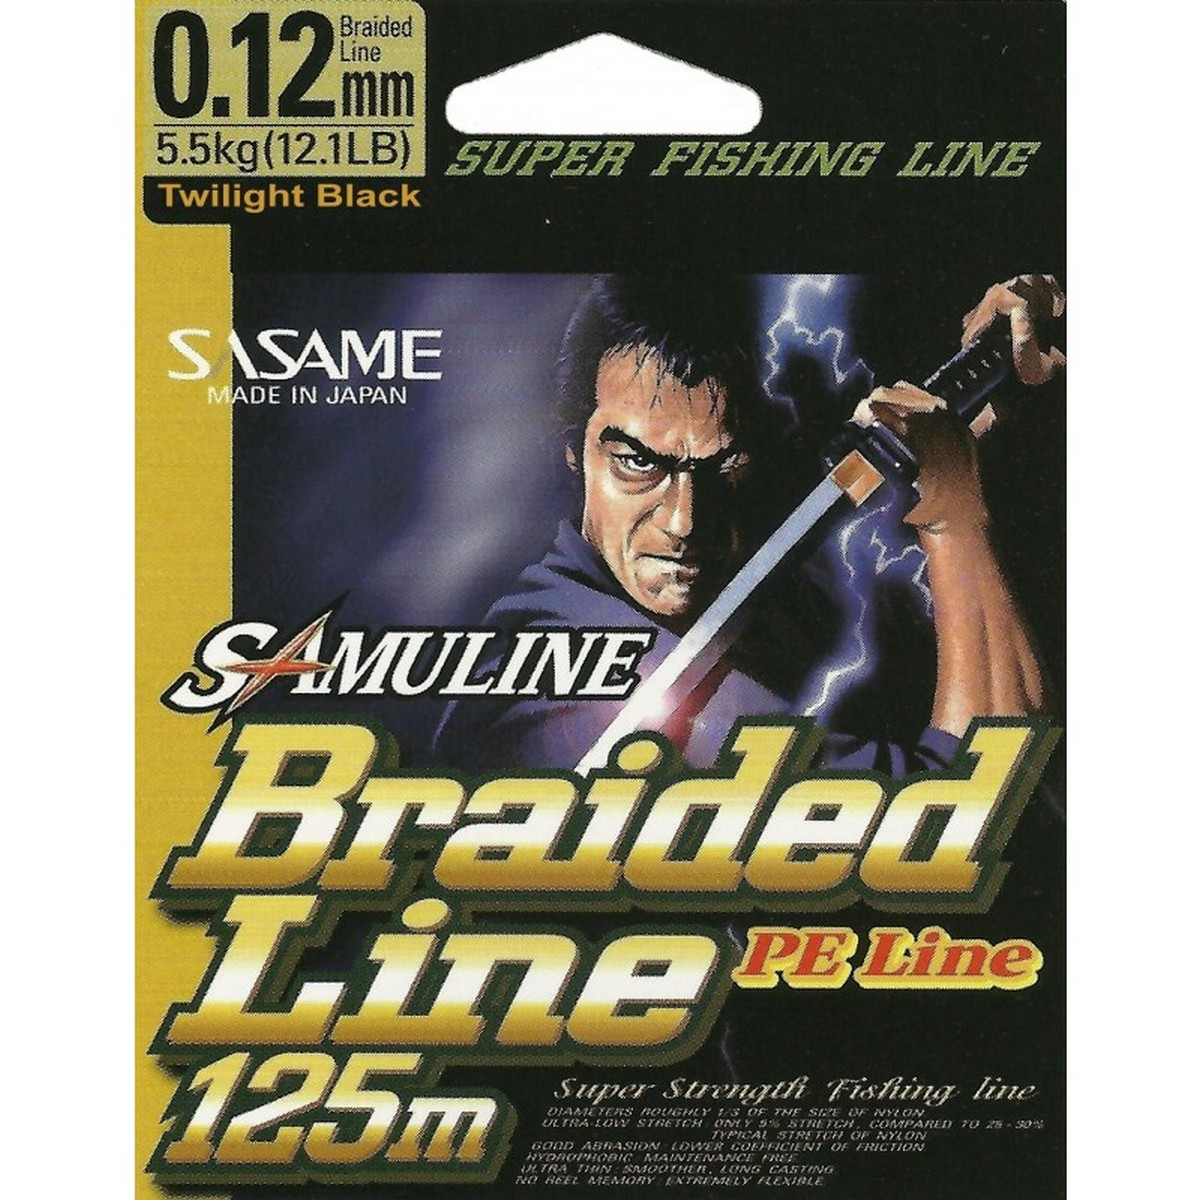 Плетено влакно Sasame Samuline Braided Line Yellow 125m